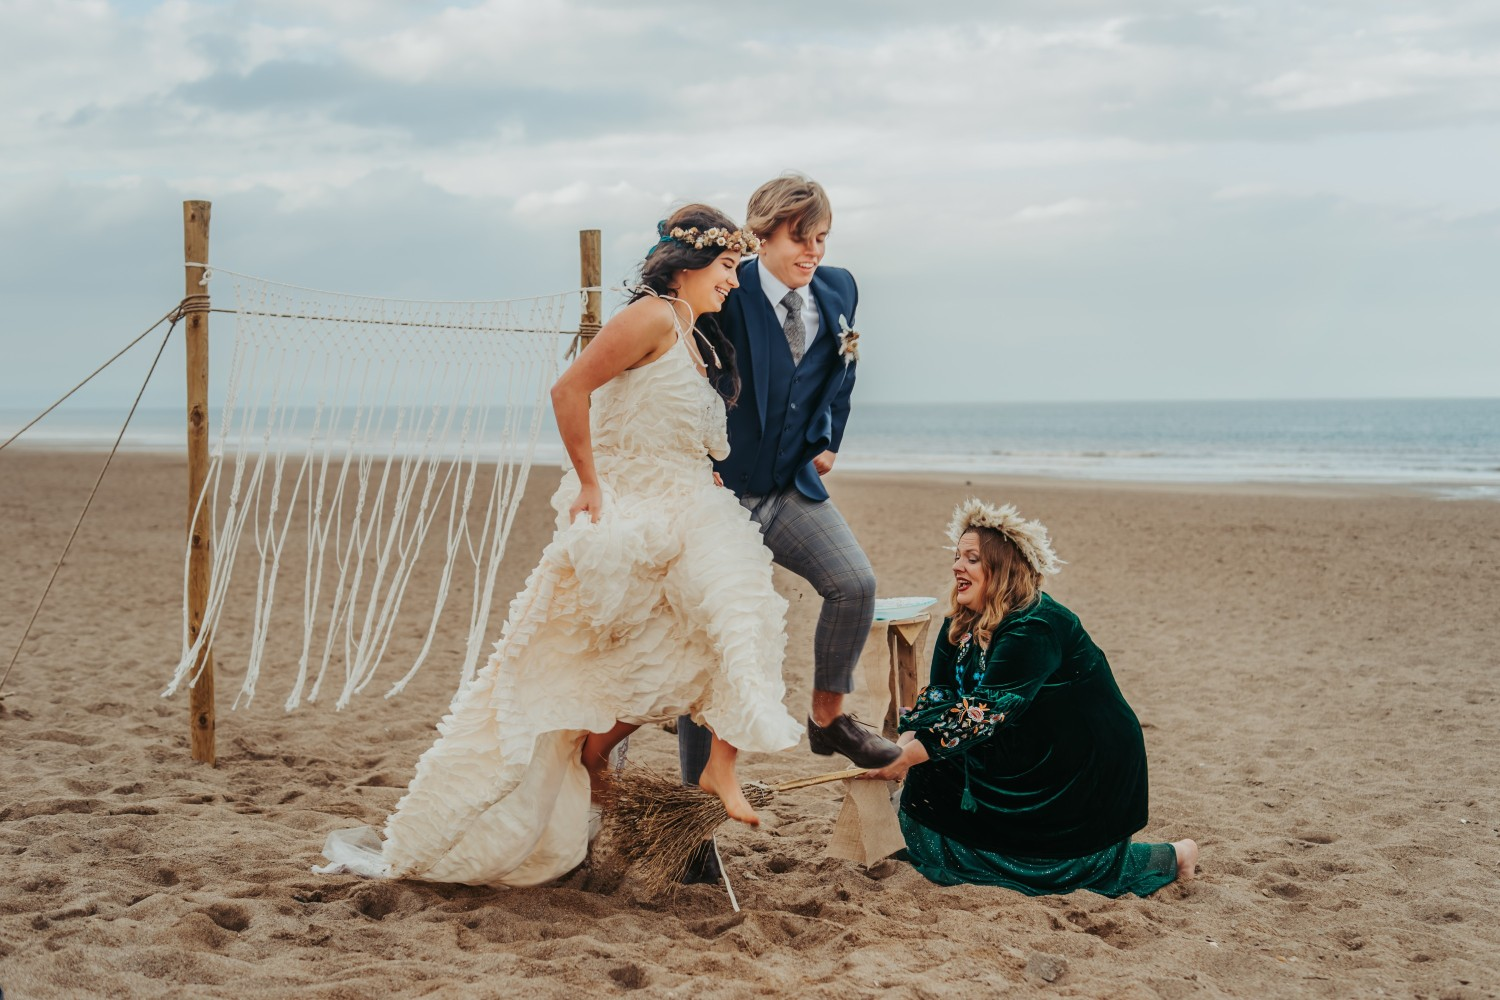 beach elopement - beach wedding - eco friendly wedding -tempest themed wedding - jumping the broom wedding ceremony